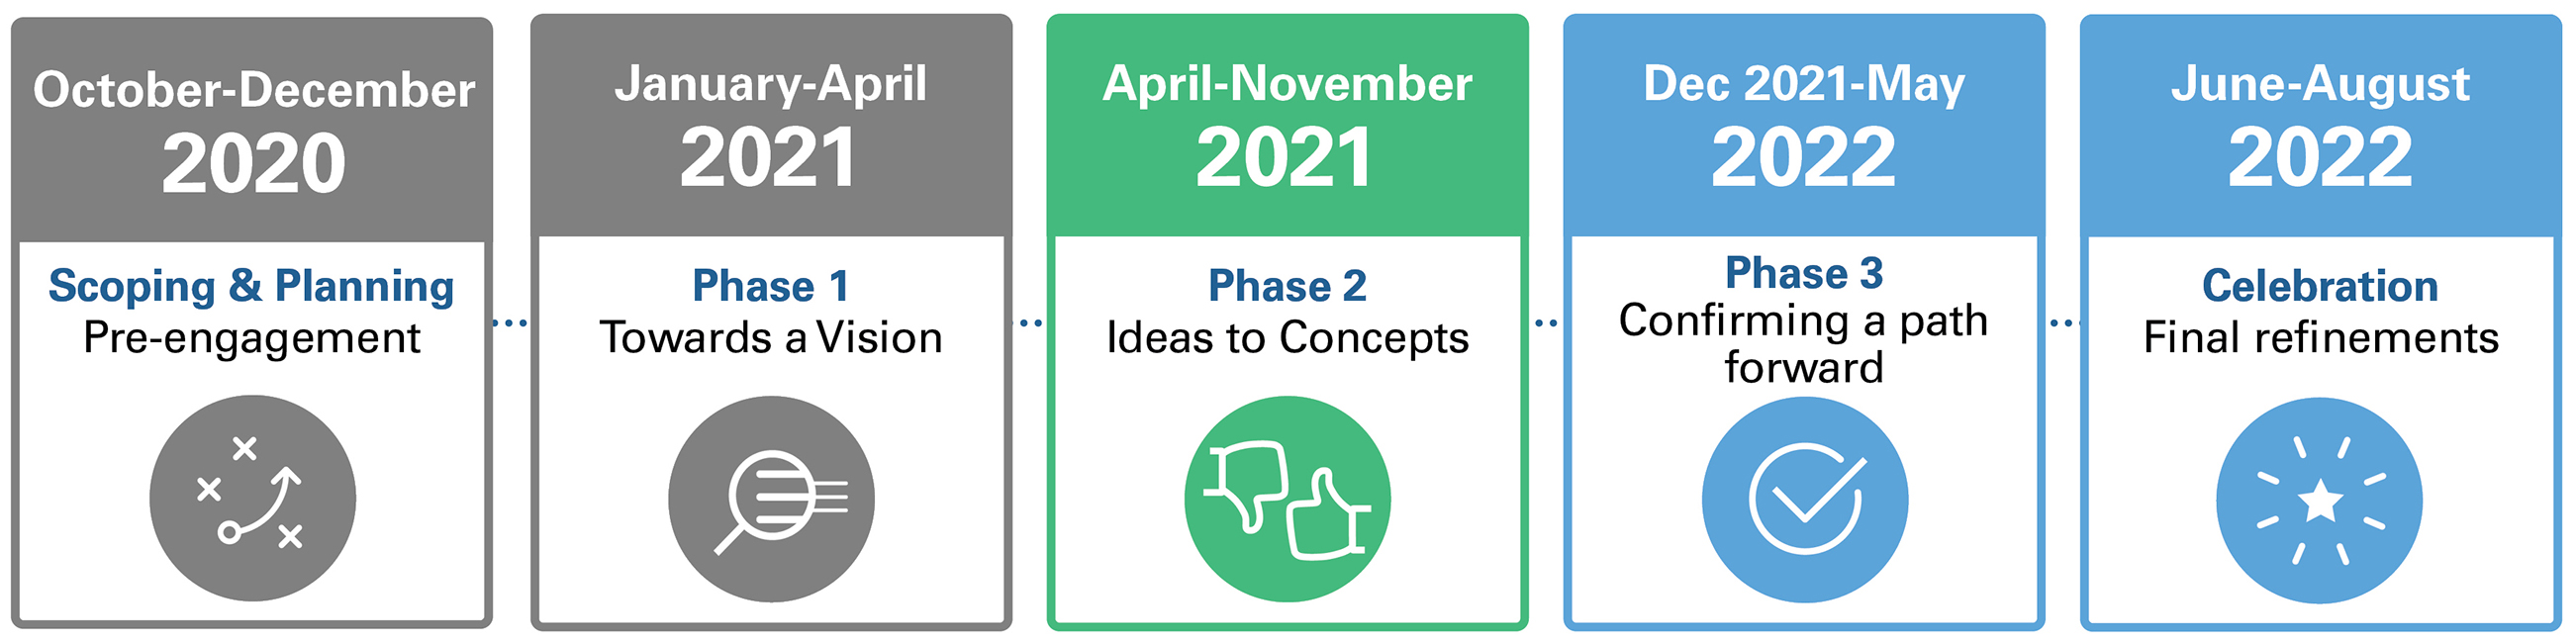 Five boxes depicting the timeline. From left to right: October to December 2020: Scoping and Planning, pre-engagement (colour, grey); January to April 2021: Phase 1, towards a vision (colour, green); April to November 2021: Phase 2, testing ideas (colour, blue); December 2021 to May 2022: Phase 3, confirming a path forward (colour, blue); June to August 2022: Celebration, final refinements (colour, blue)